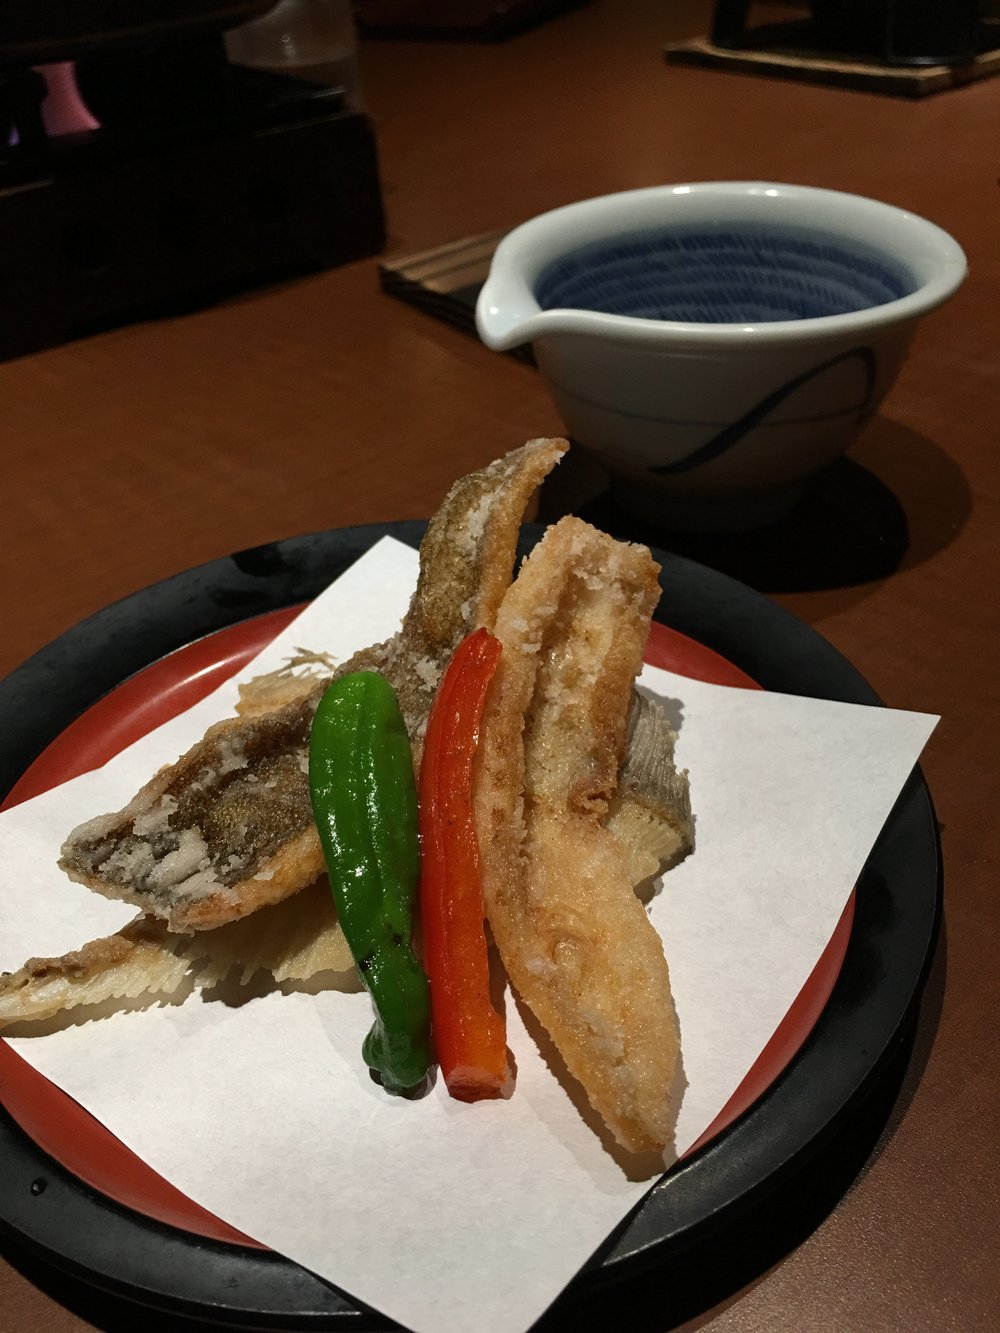 From my experiences, tempura produced by luxurious eateries tend to have a thin batter covering to balance and lift the root tastes of fish and vegetable although I rarely visit expensive restaurants such as this place.